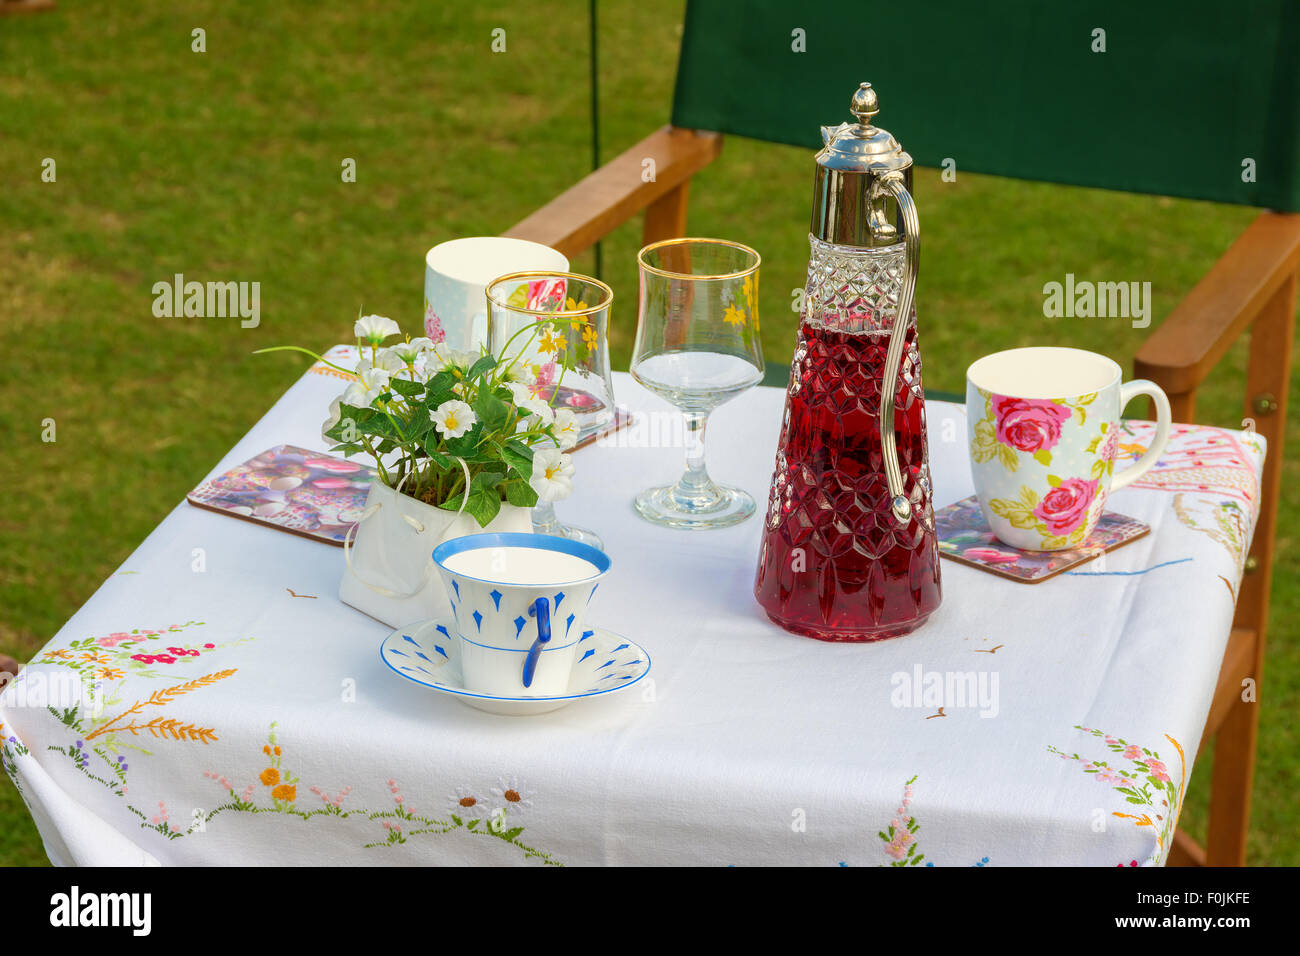 Traditional Picnic Table Set Outdoors With Wine